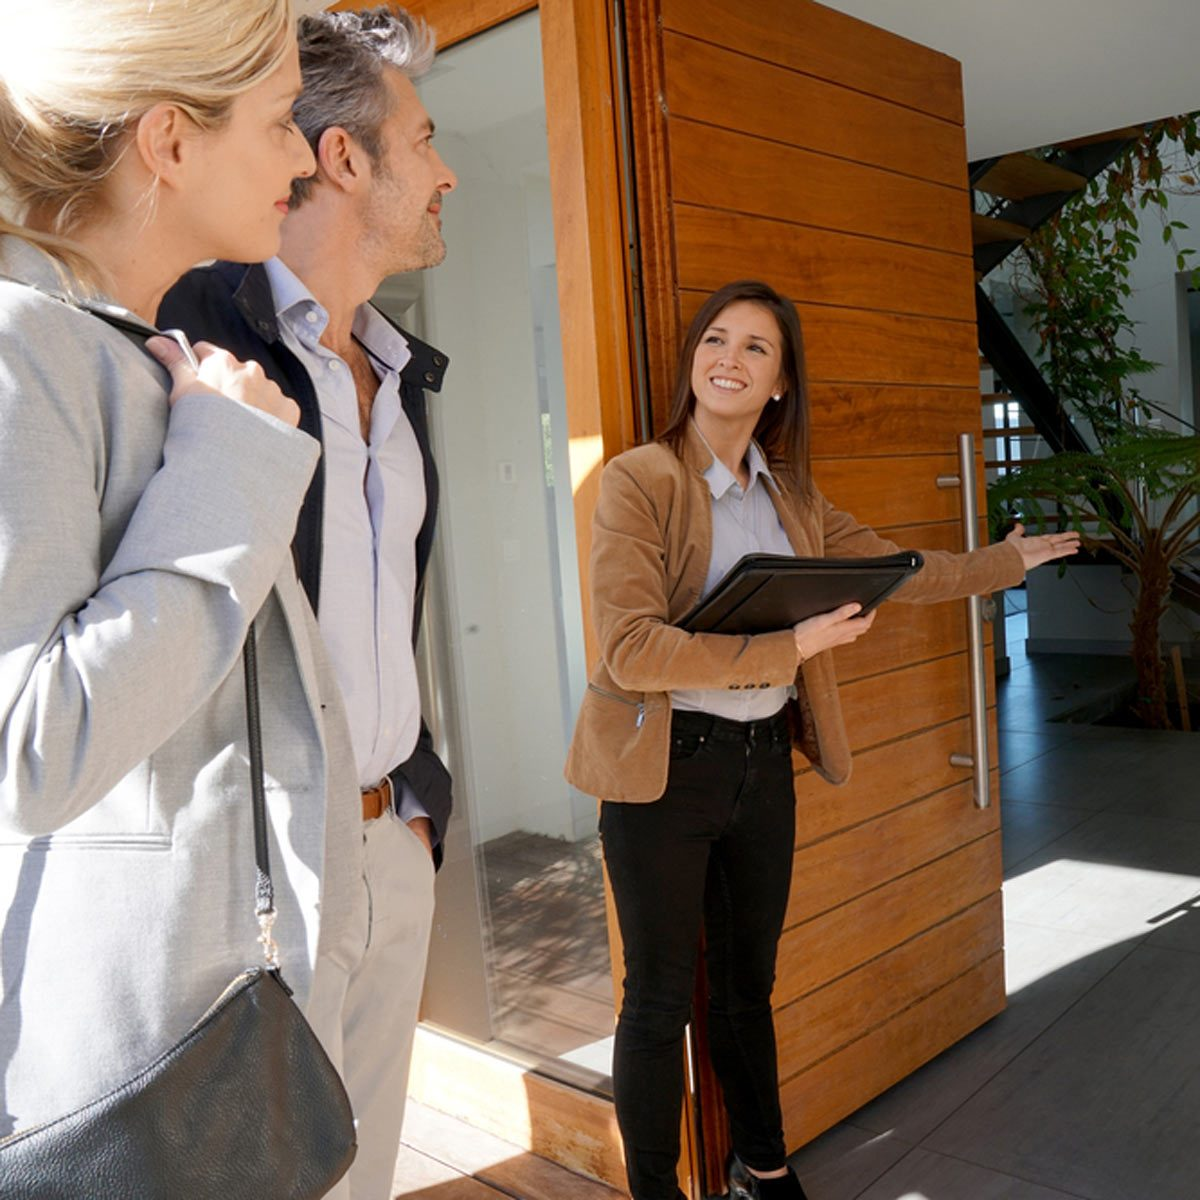 shutterstock_580640611 Real estate agent inviting couple to enter house for visit home inspection